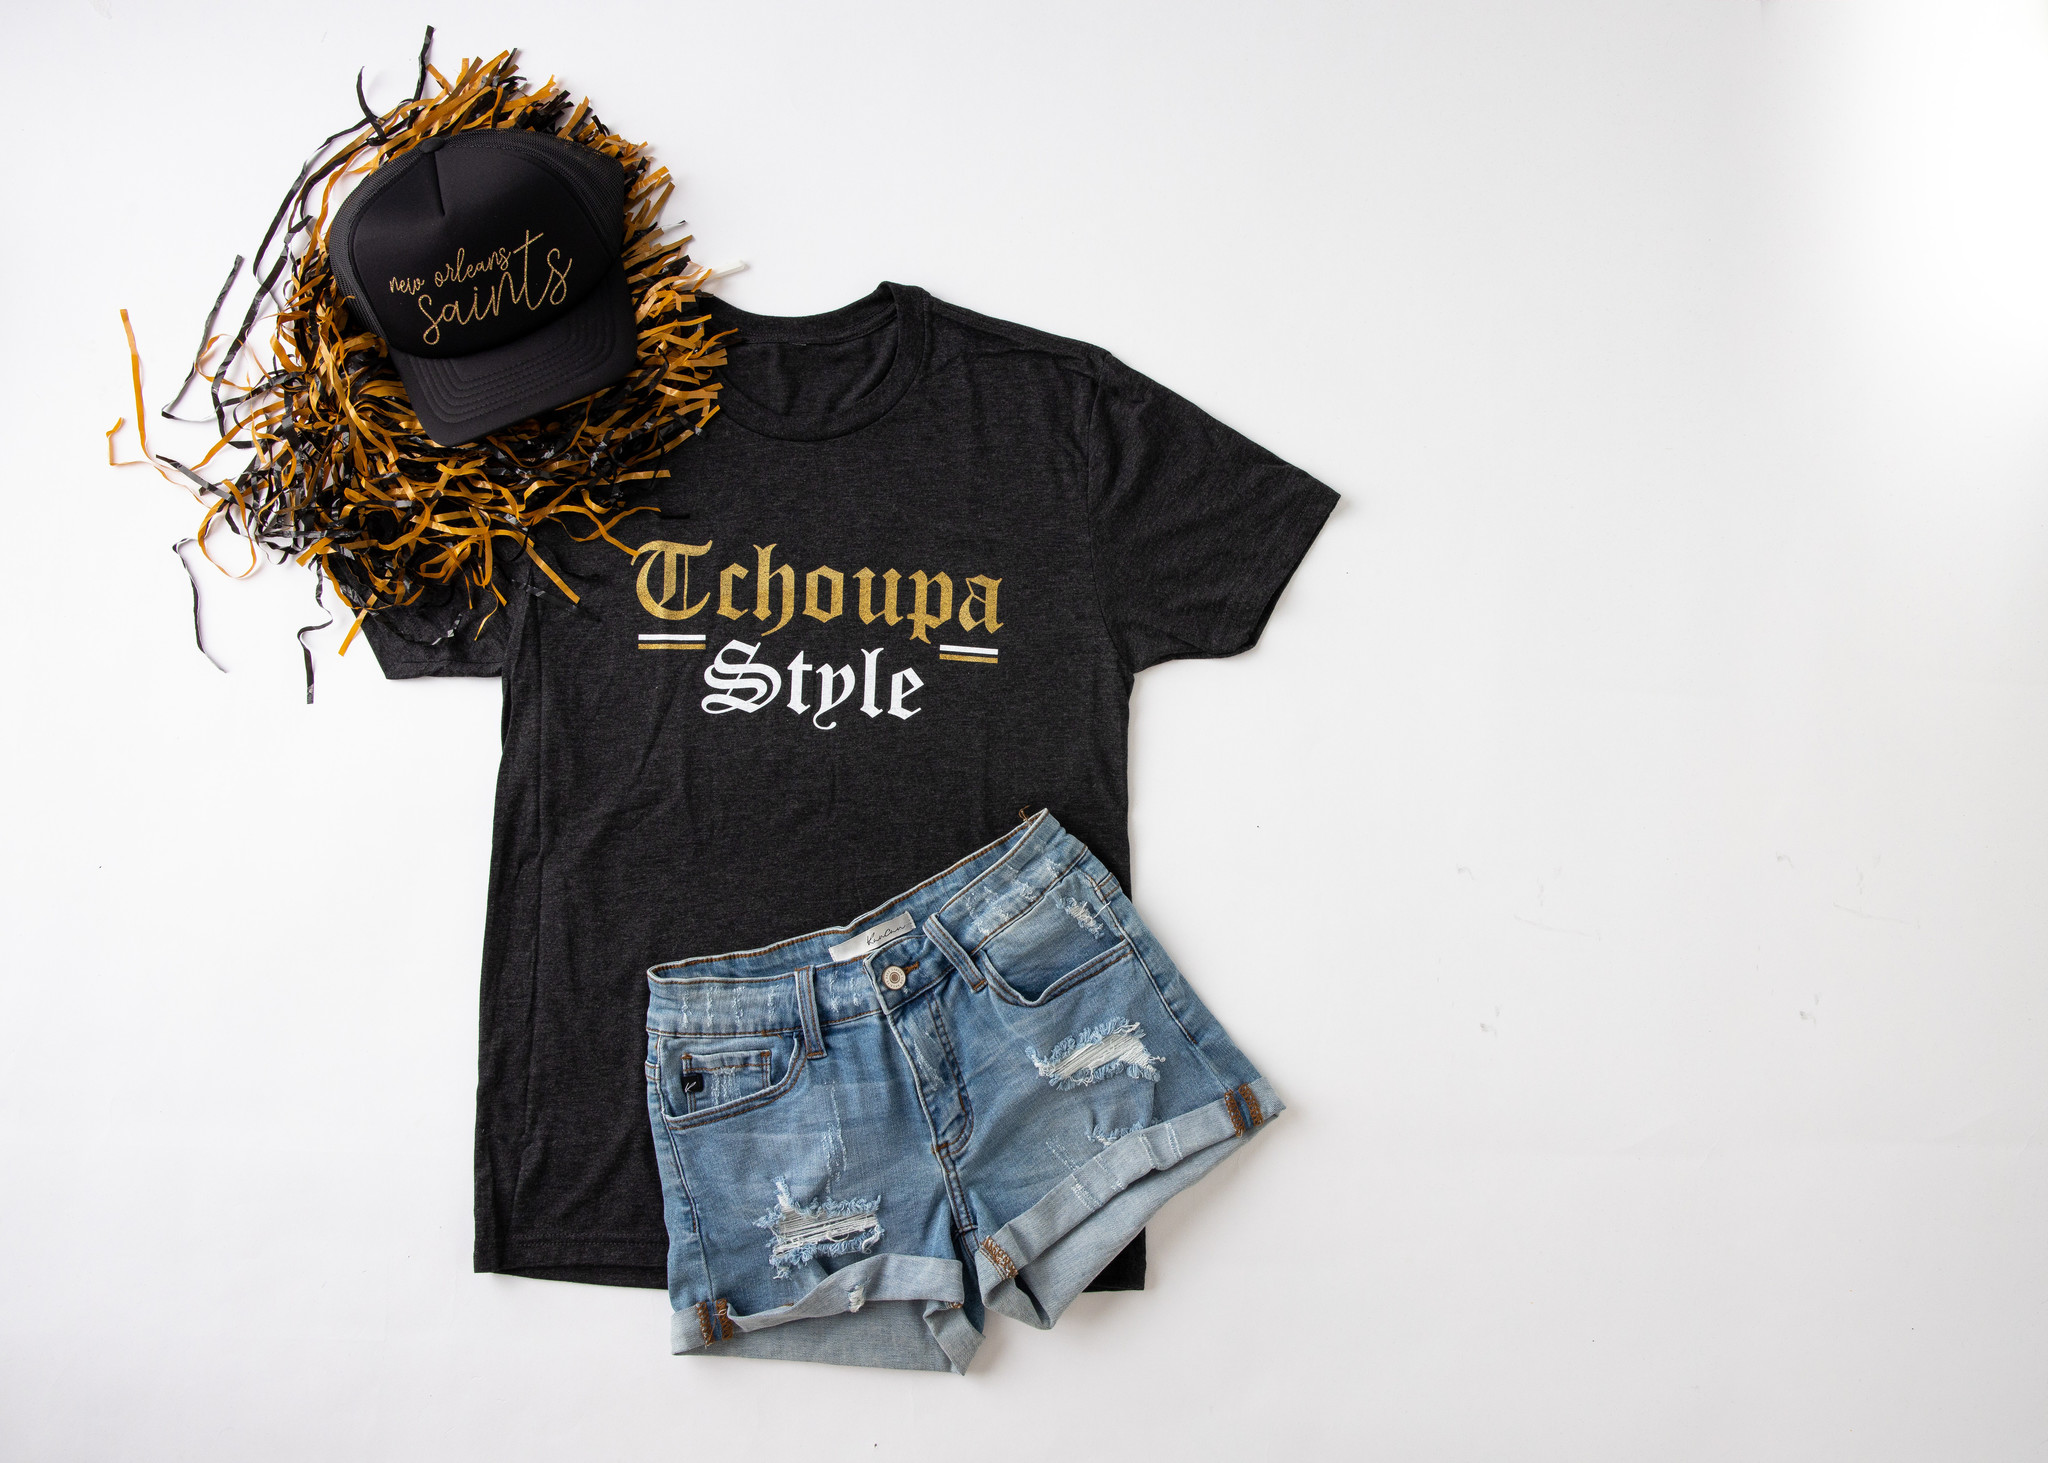 Tchoupa Style Tee